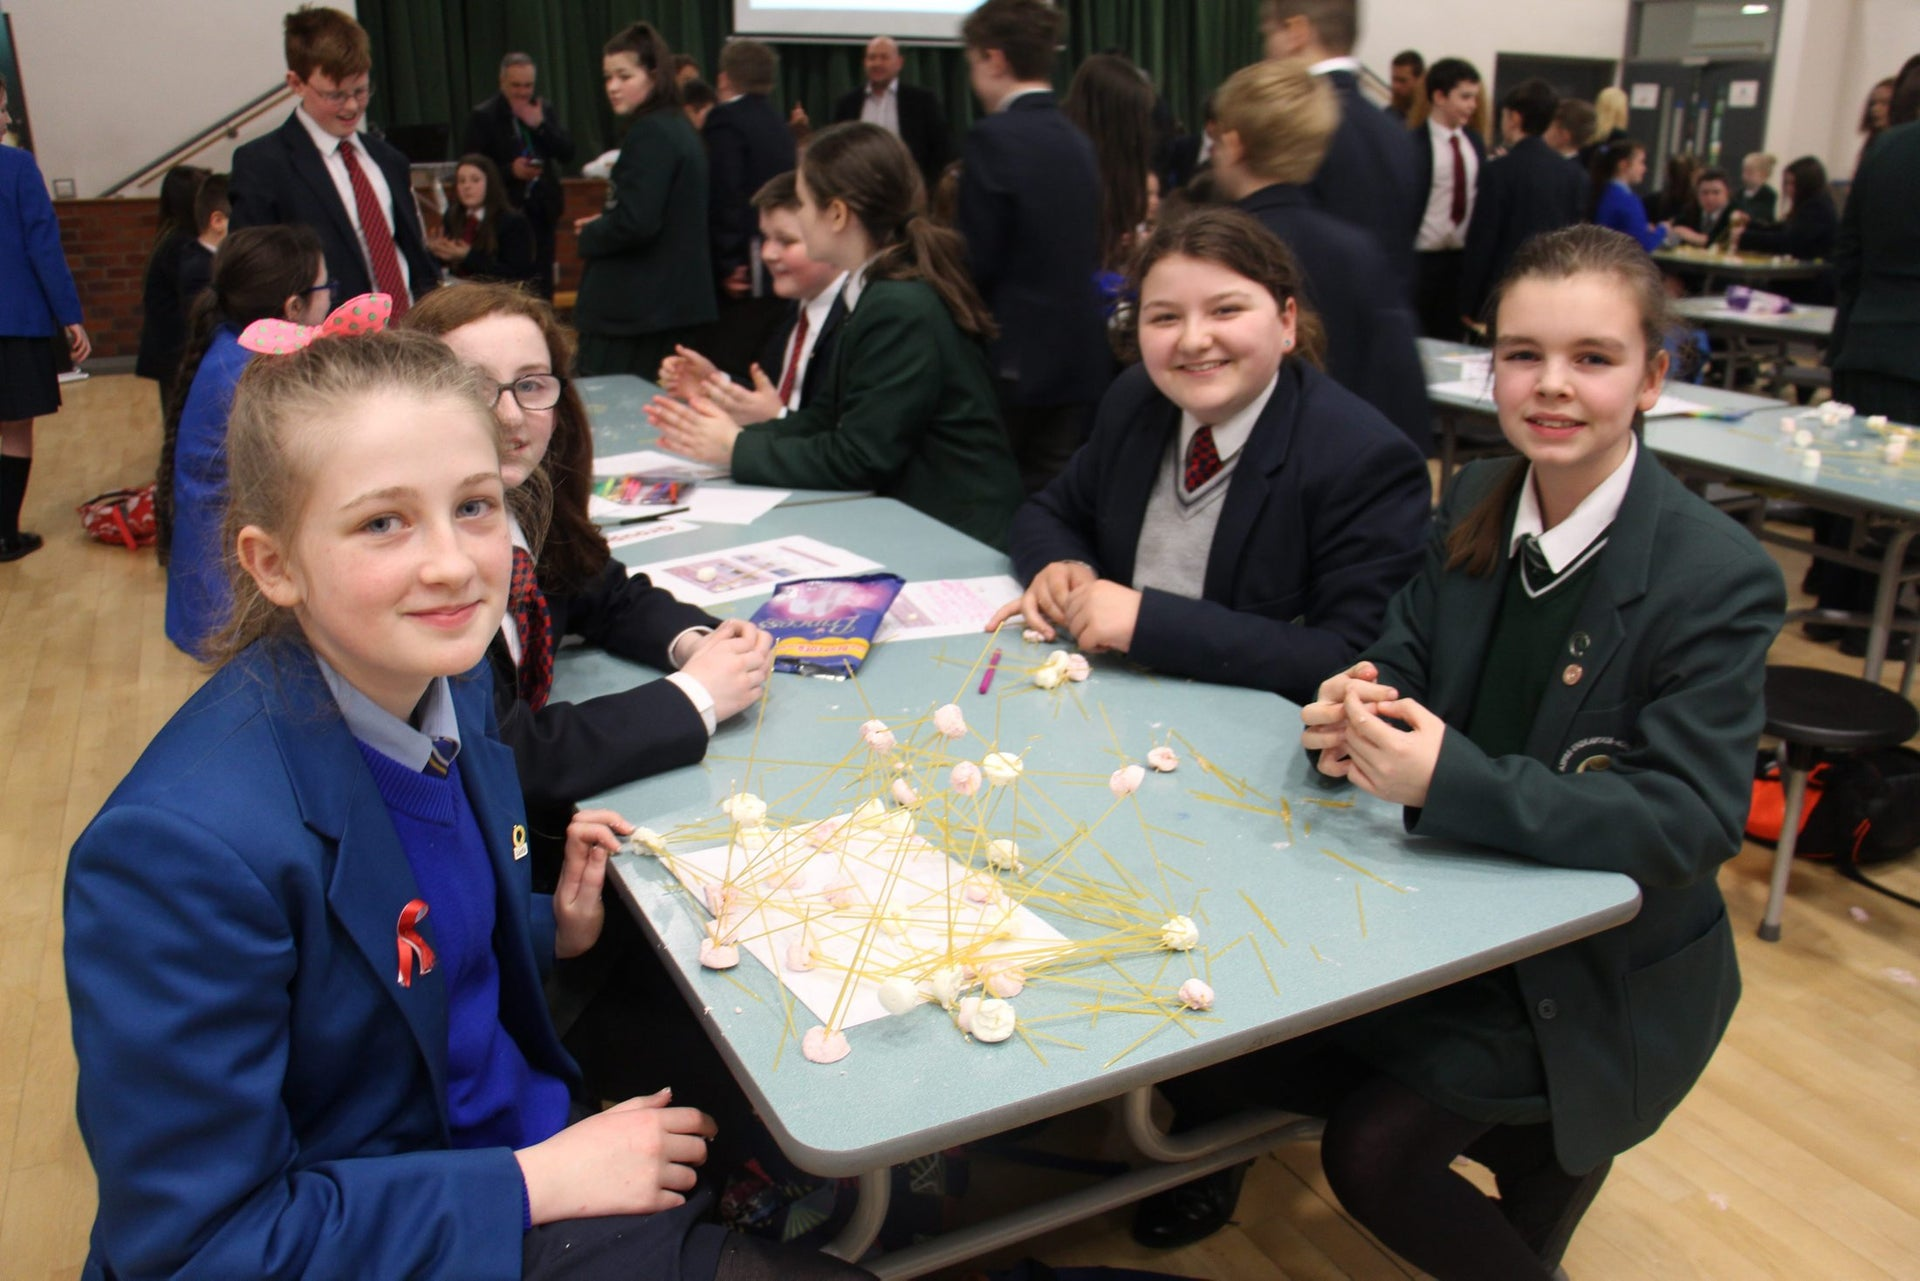 Integrated school activity in Derry/Londonderry.